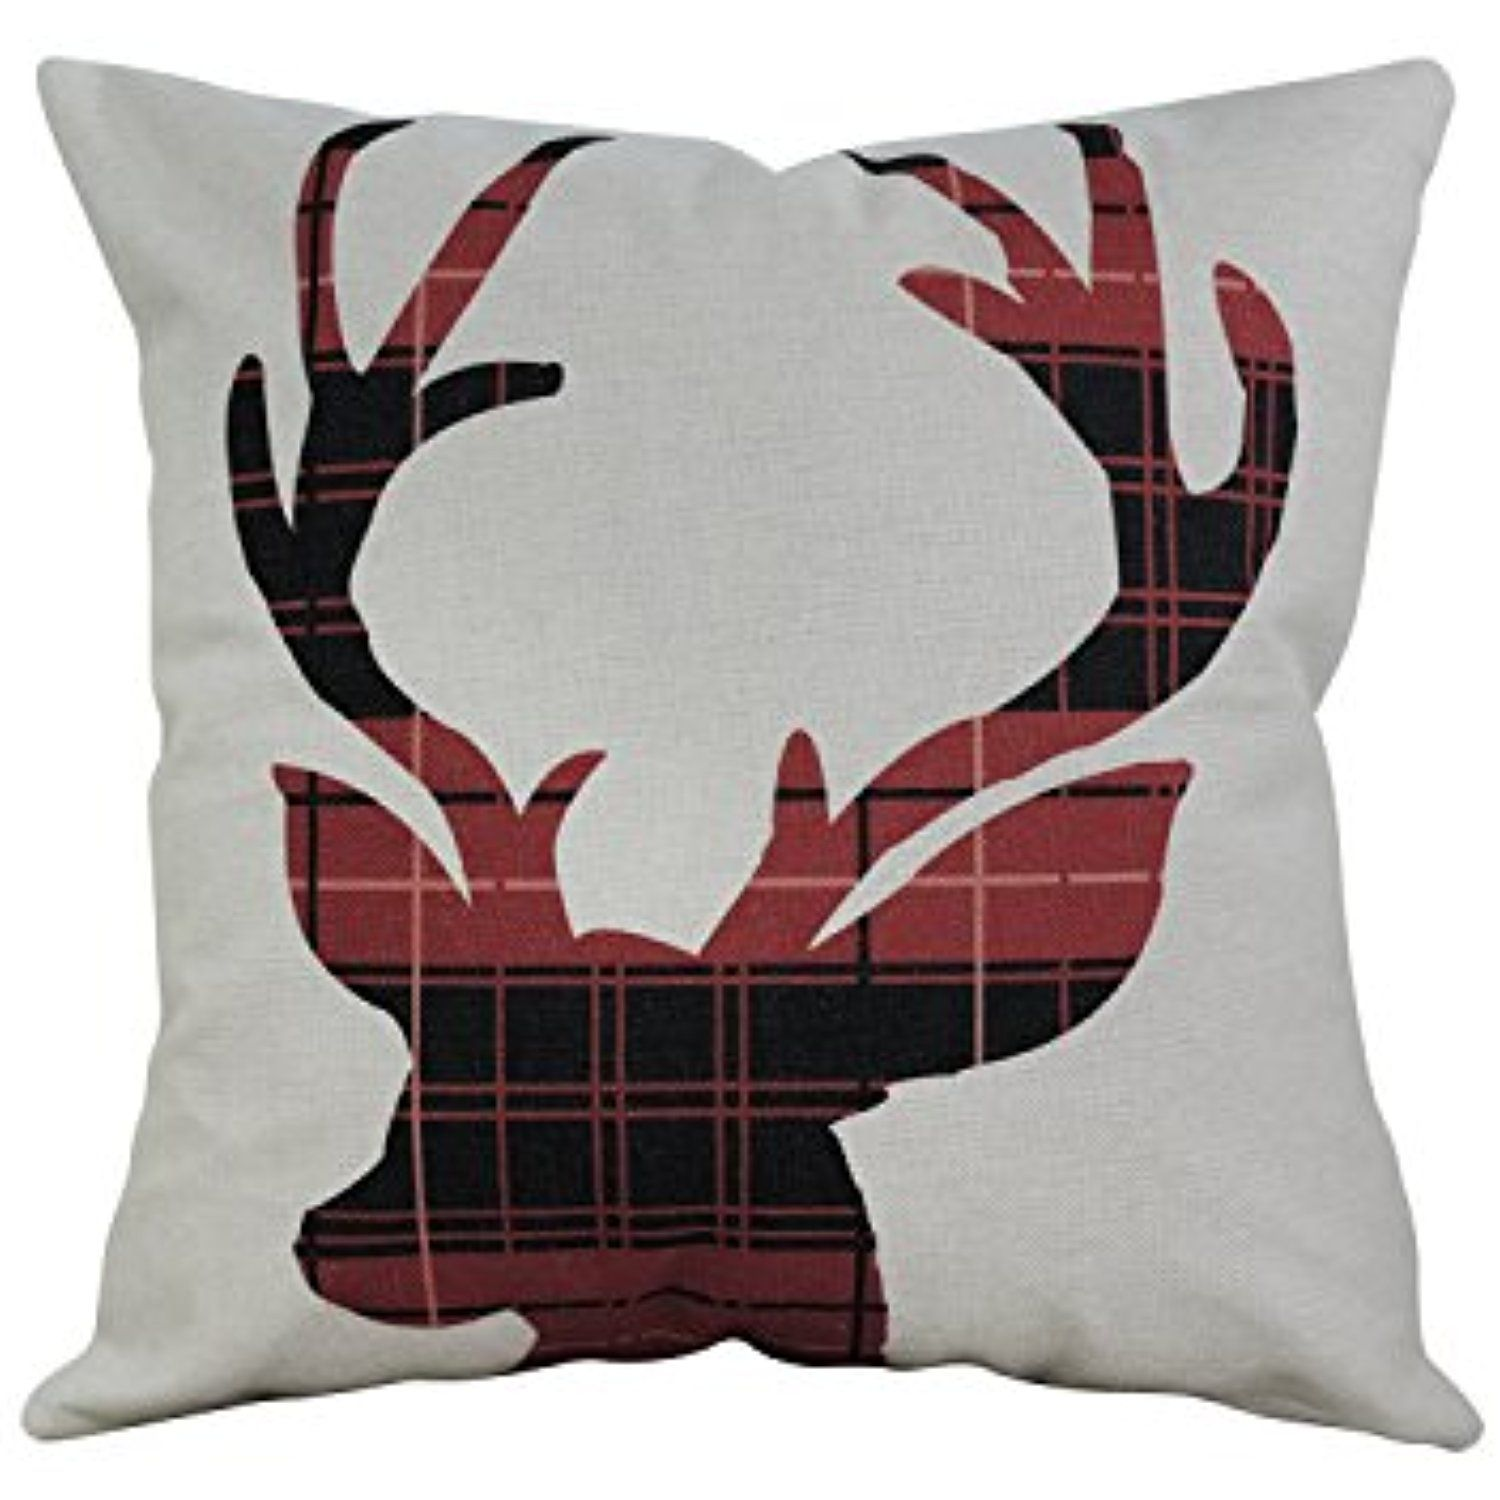 unique throw mints s inspiring of pillow pillows ideas designs deer